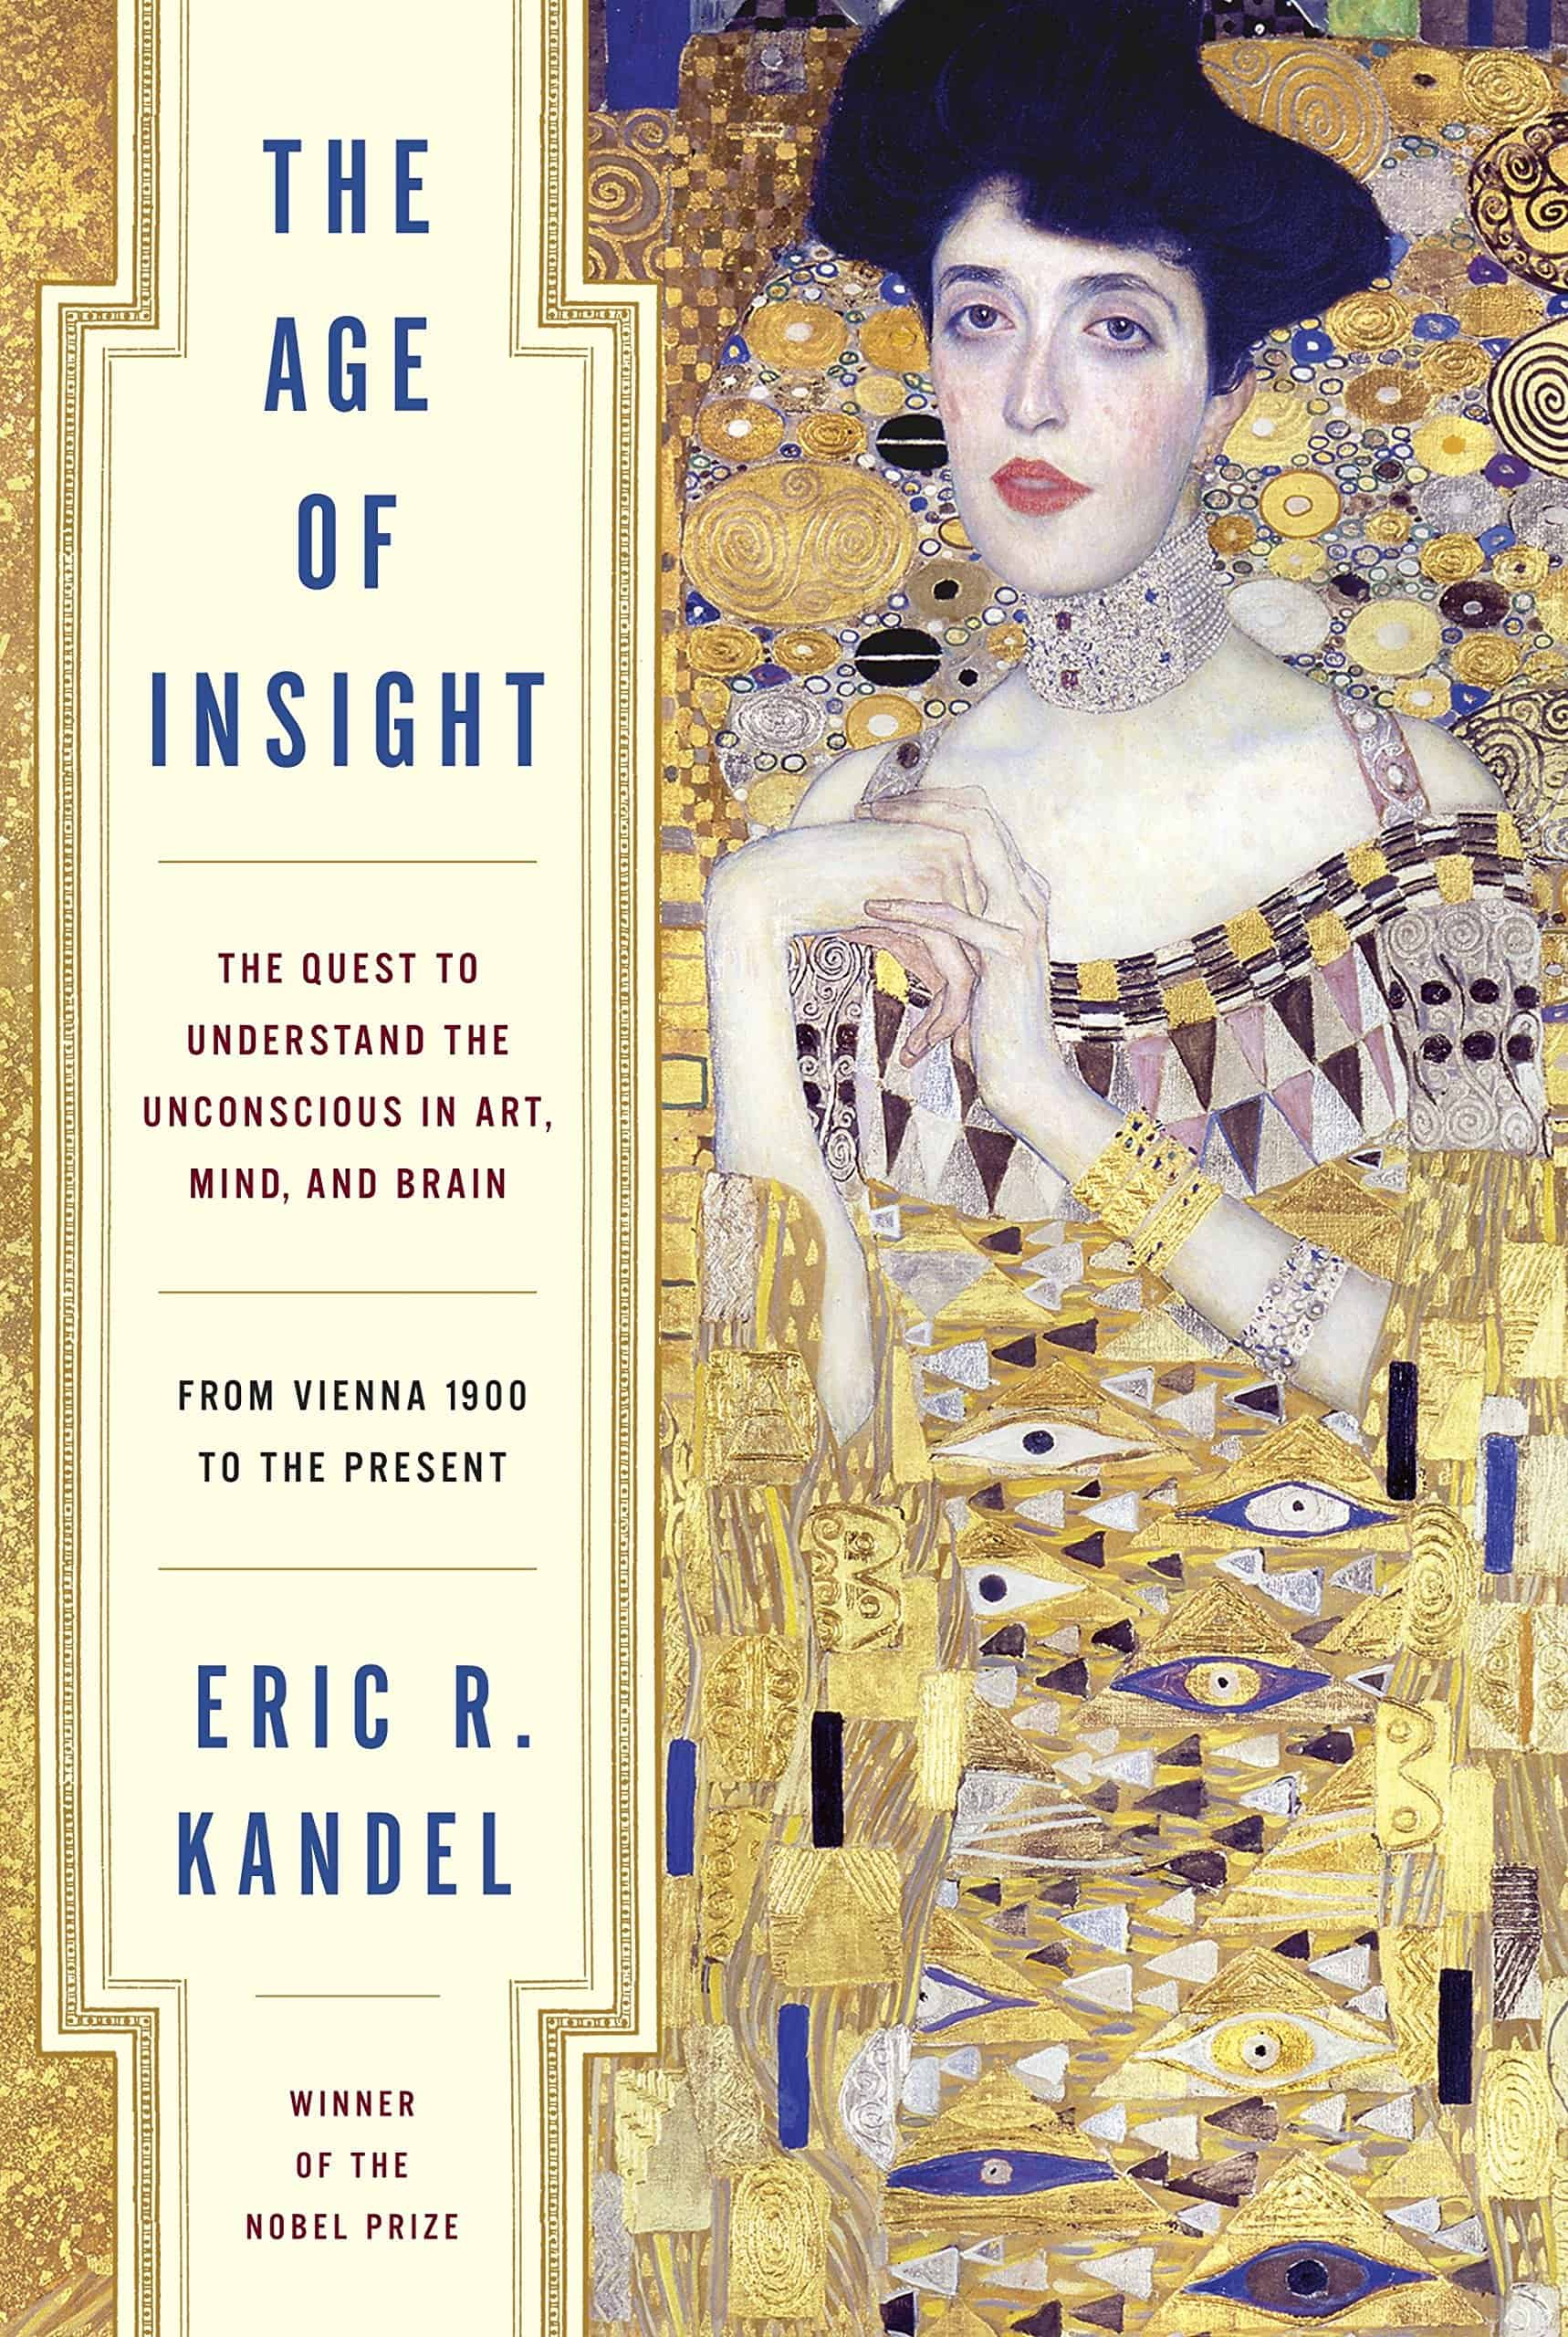 The Age of Insight: The Quest to Understand the Unconscious in Art, Mind, and Brain, from Vienna 1900 to the Present